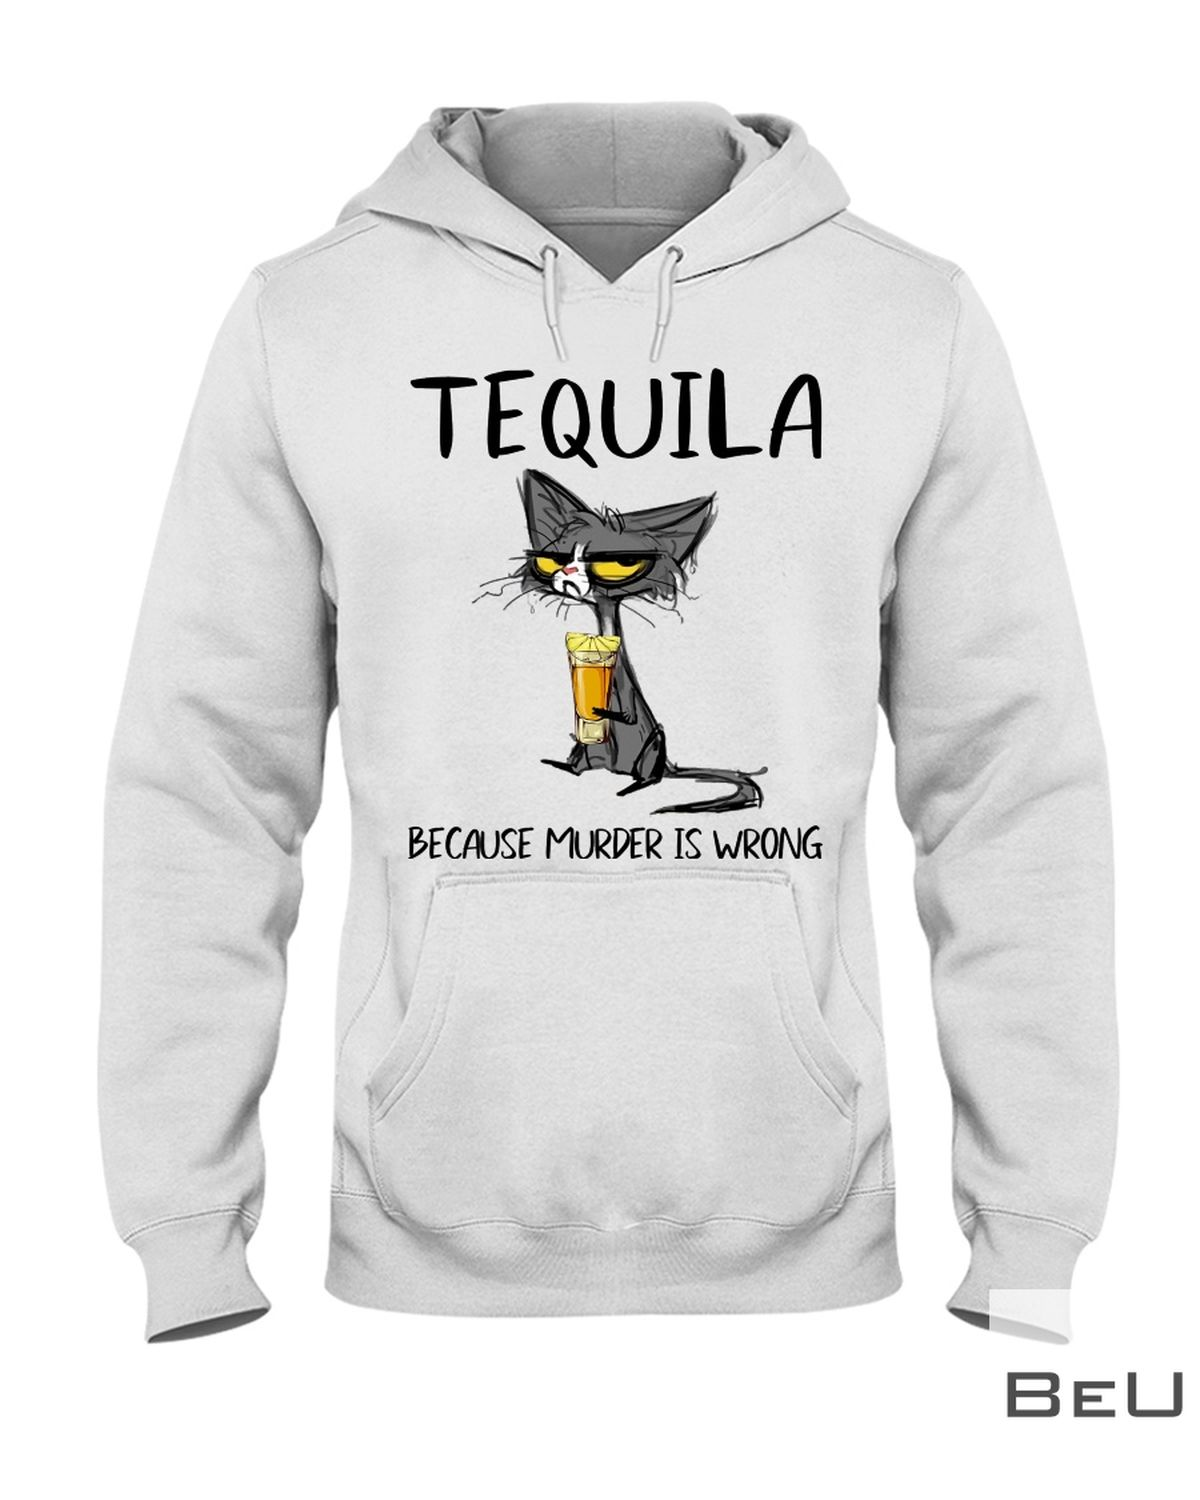 Tequila Because Murder Is Wrong Shirtx